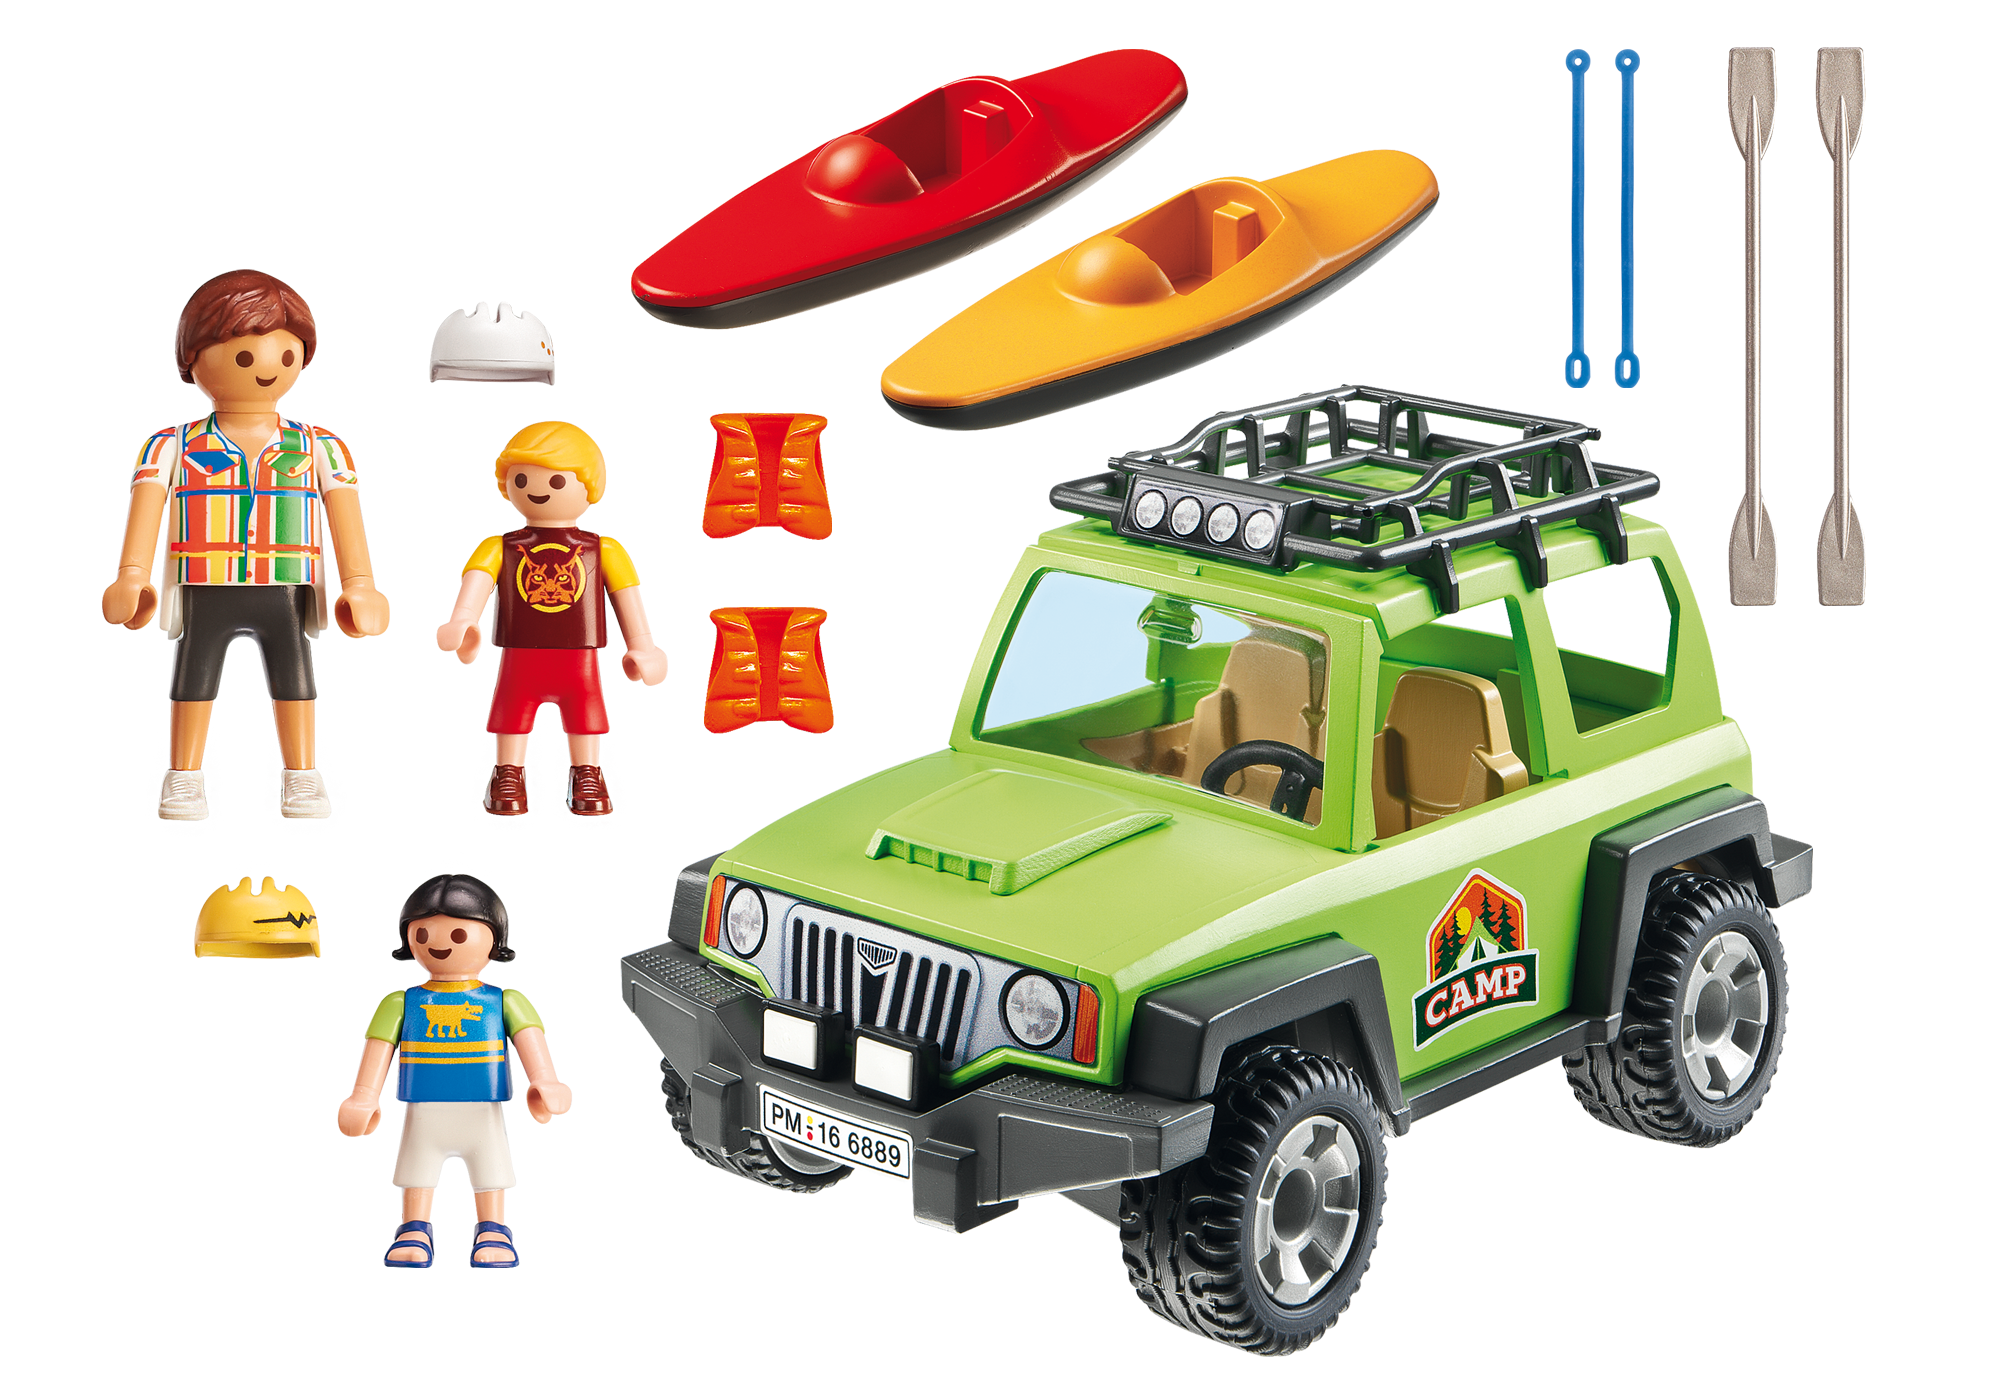 http://media.playmobil.com/i/playmobil/6889_product_box_back